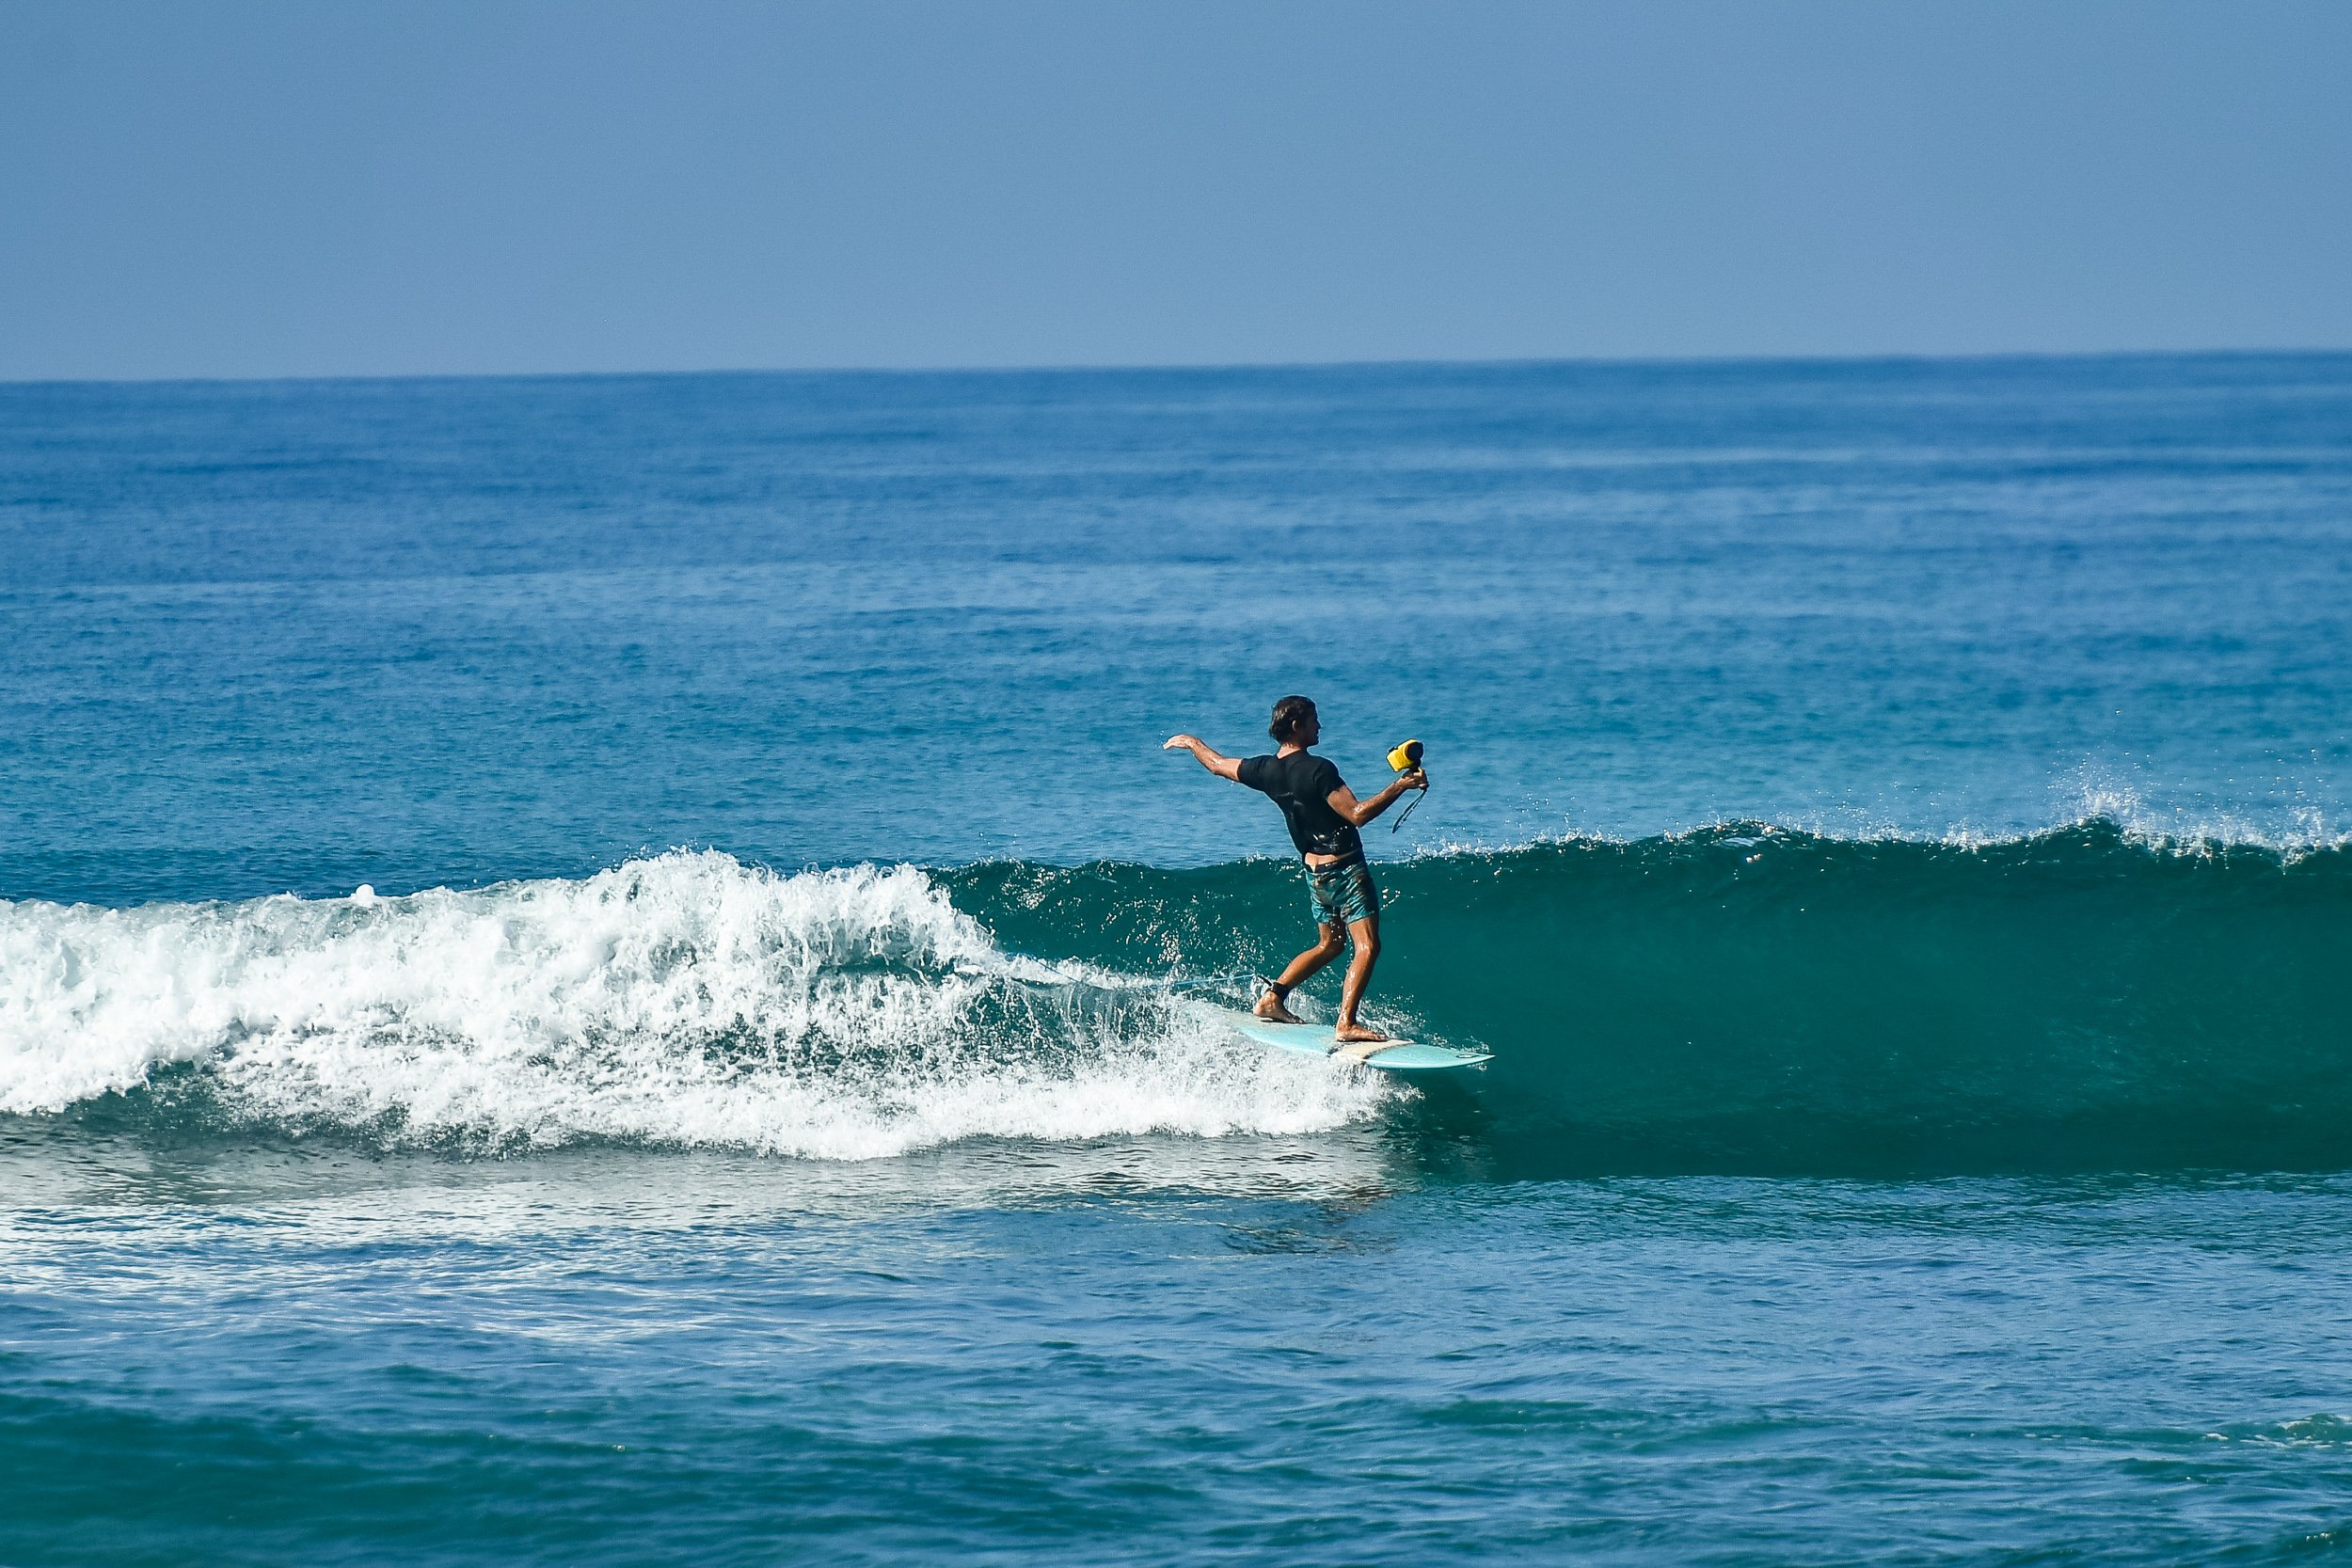 loose style surfer cruizing on a wave